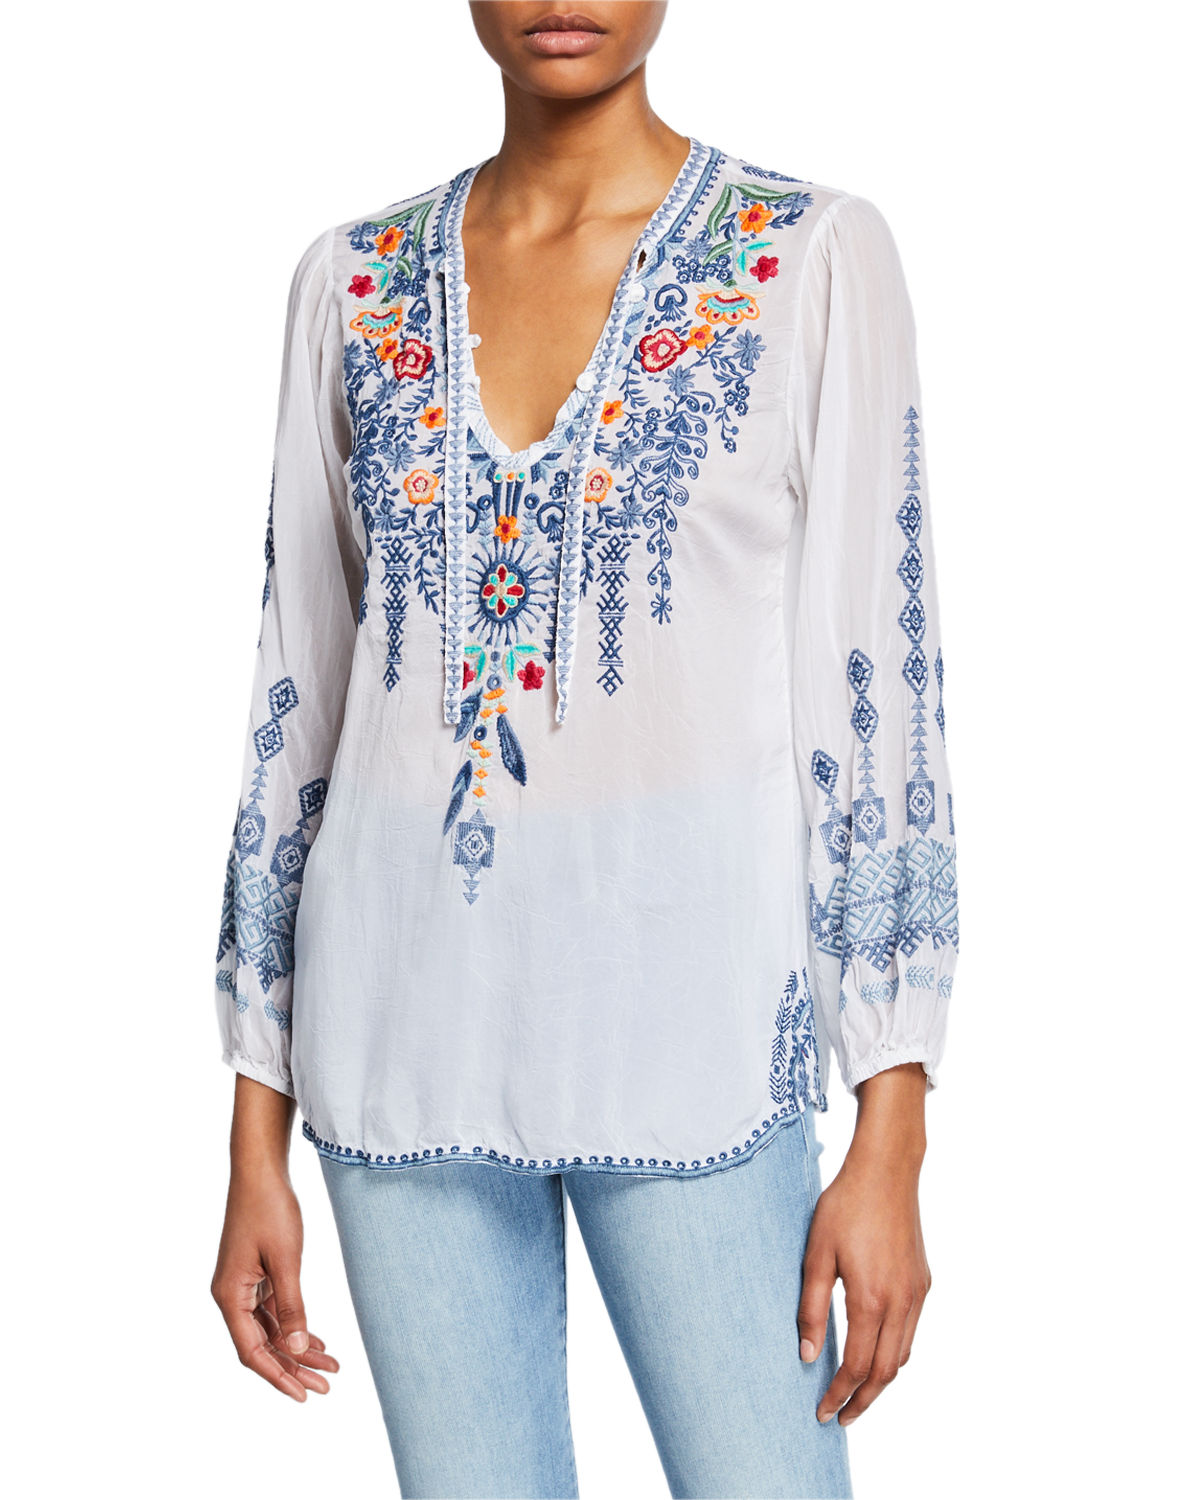 Johnny Was Tops CHELSEE EMBROIDERED V-NECK LONG-SLEEVE GEORGETTE BLOUSE